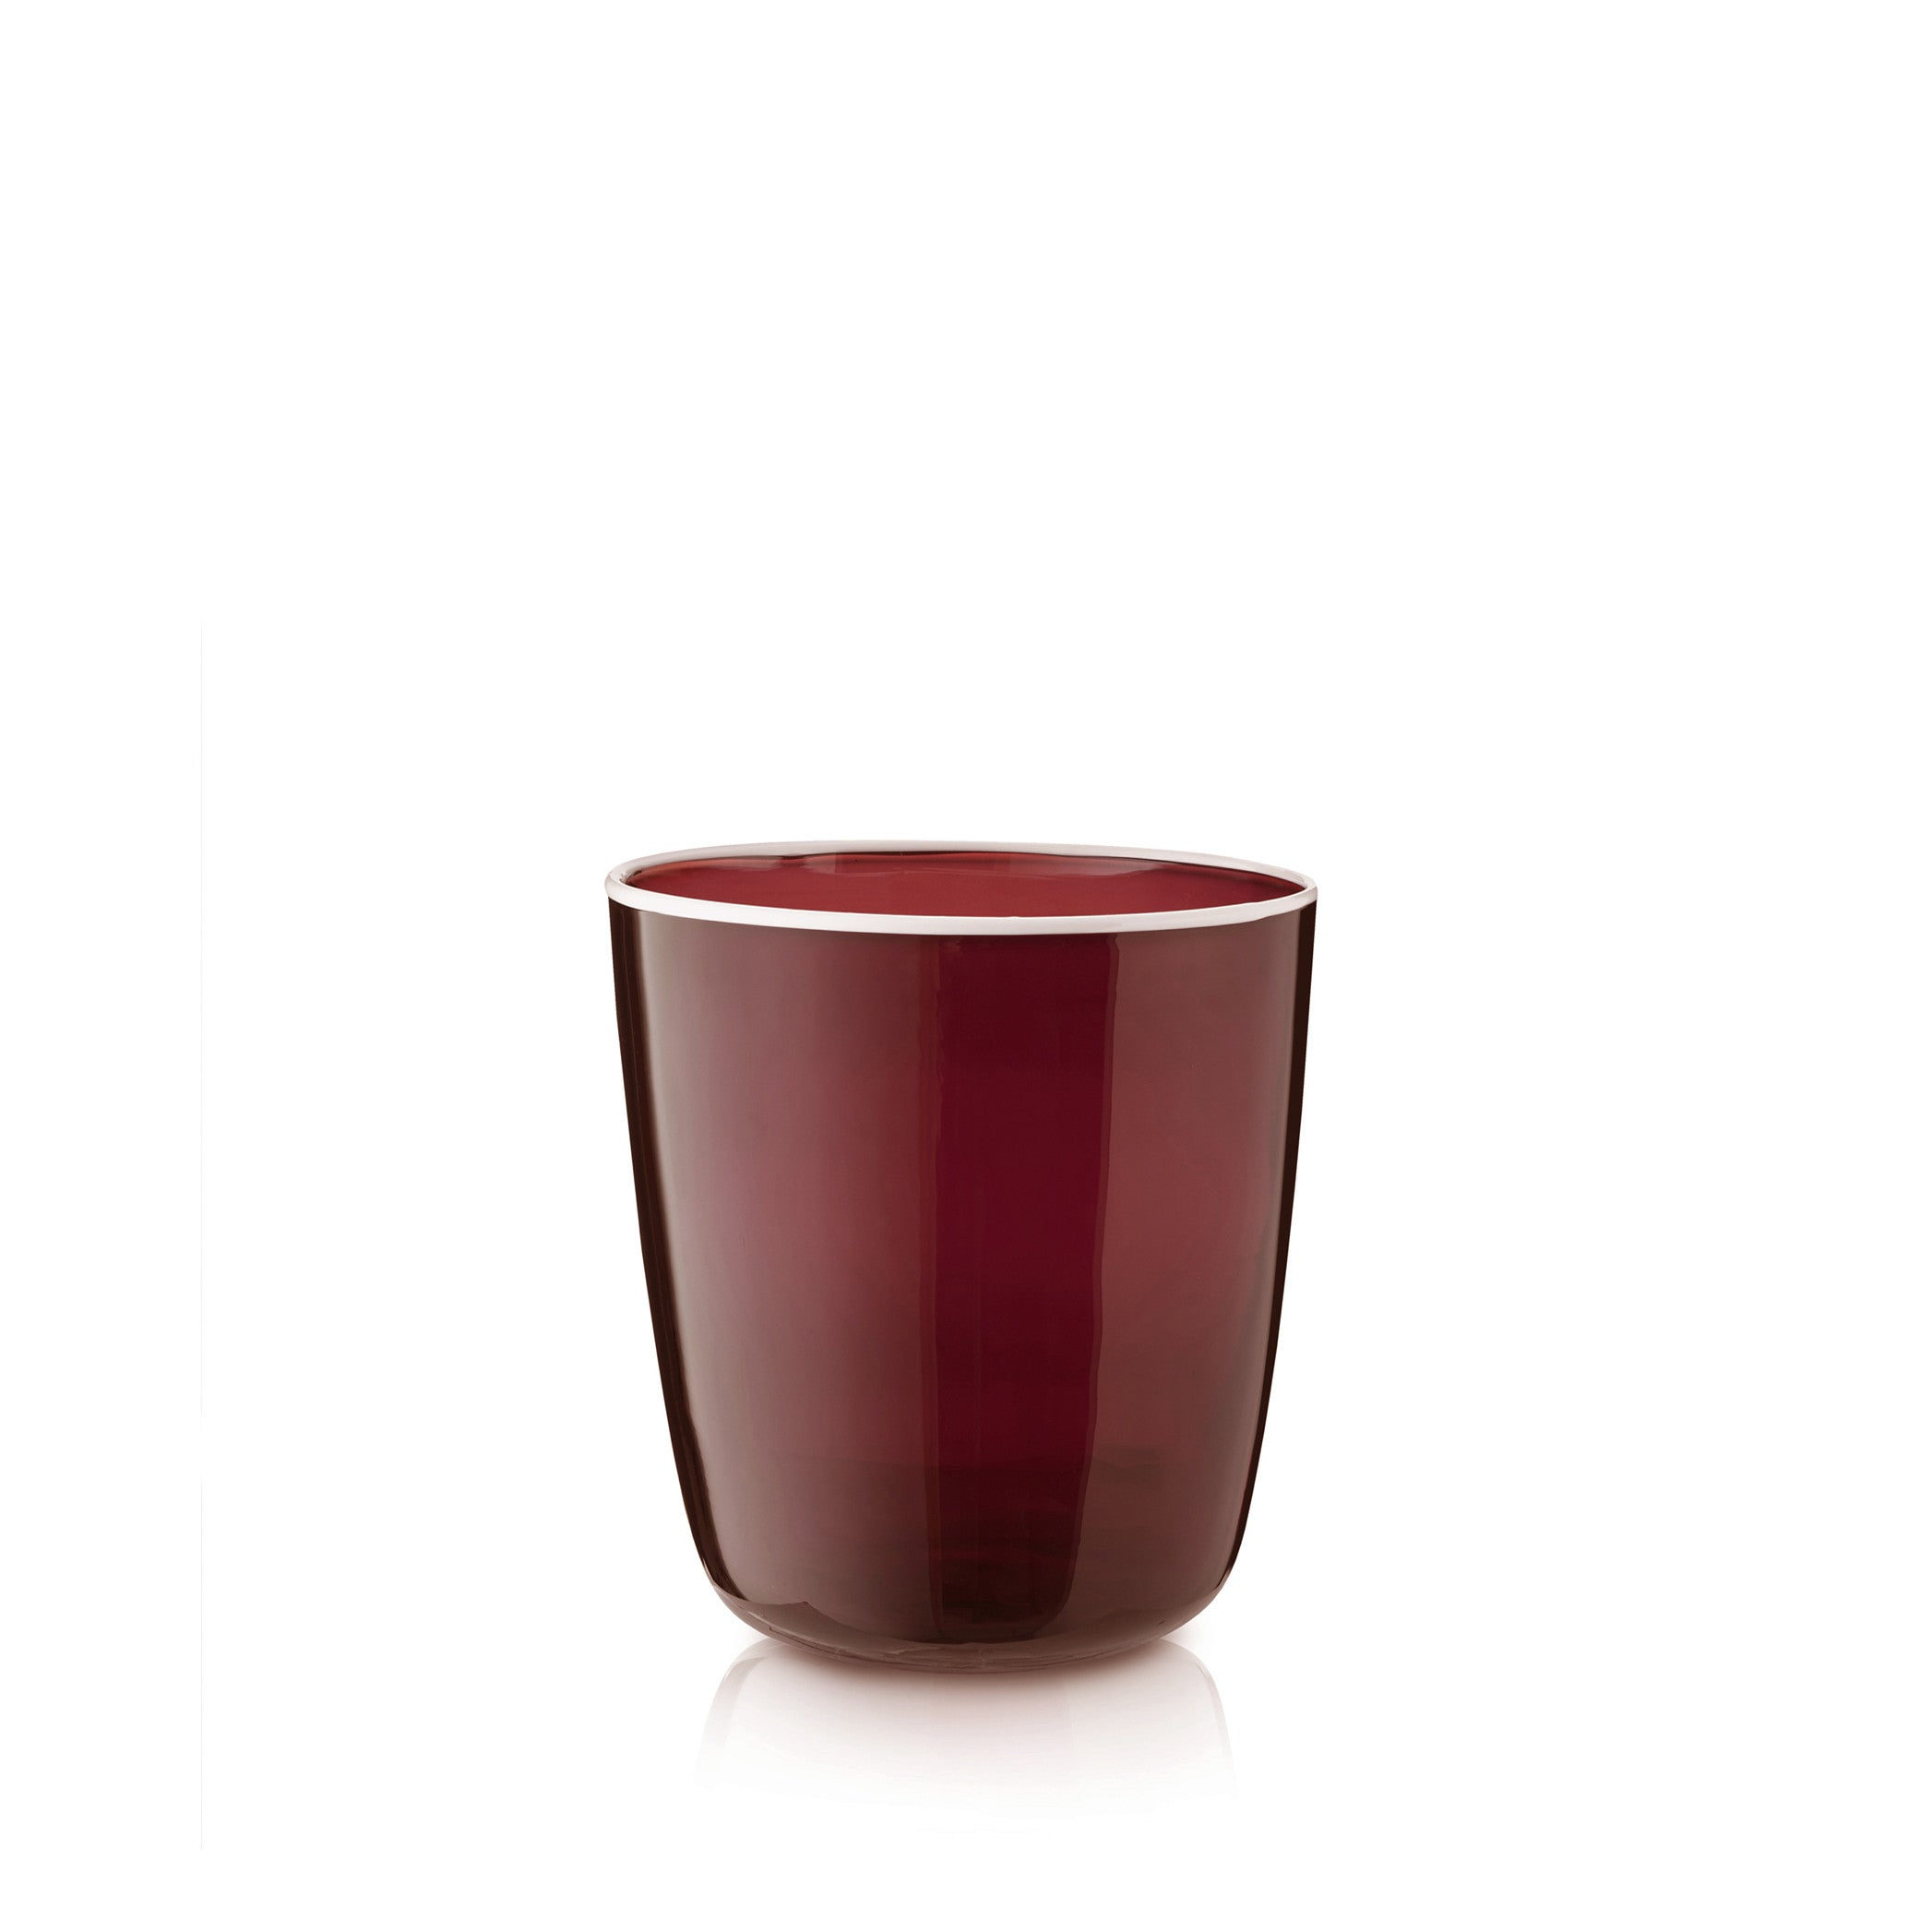 Handblown Bumba Glass in Claret Red